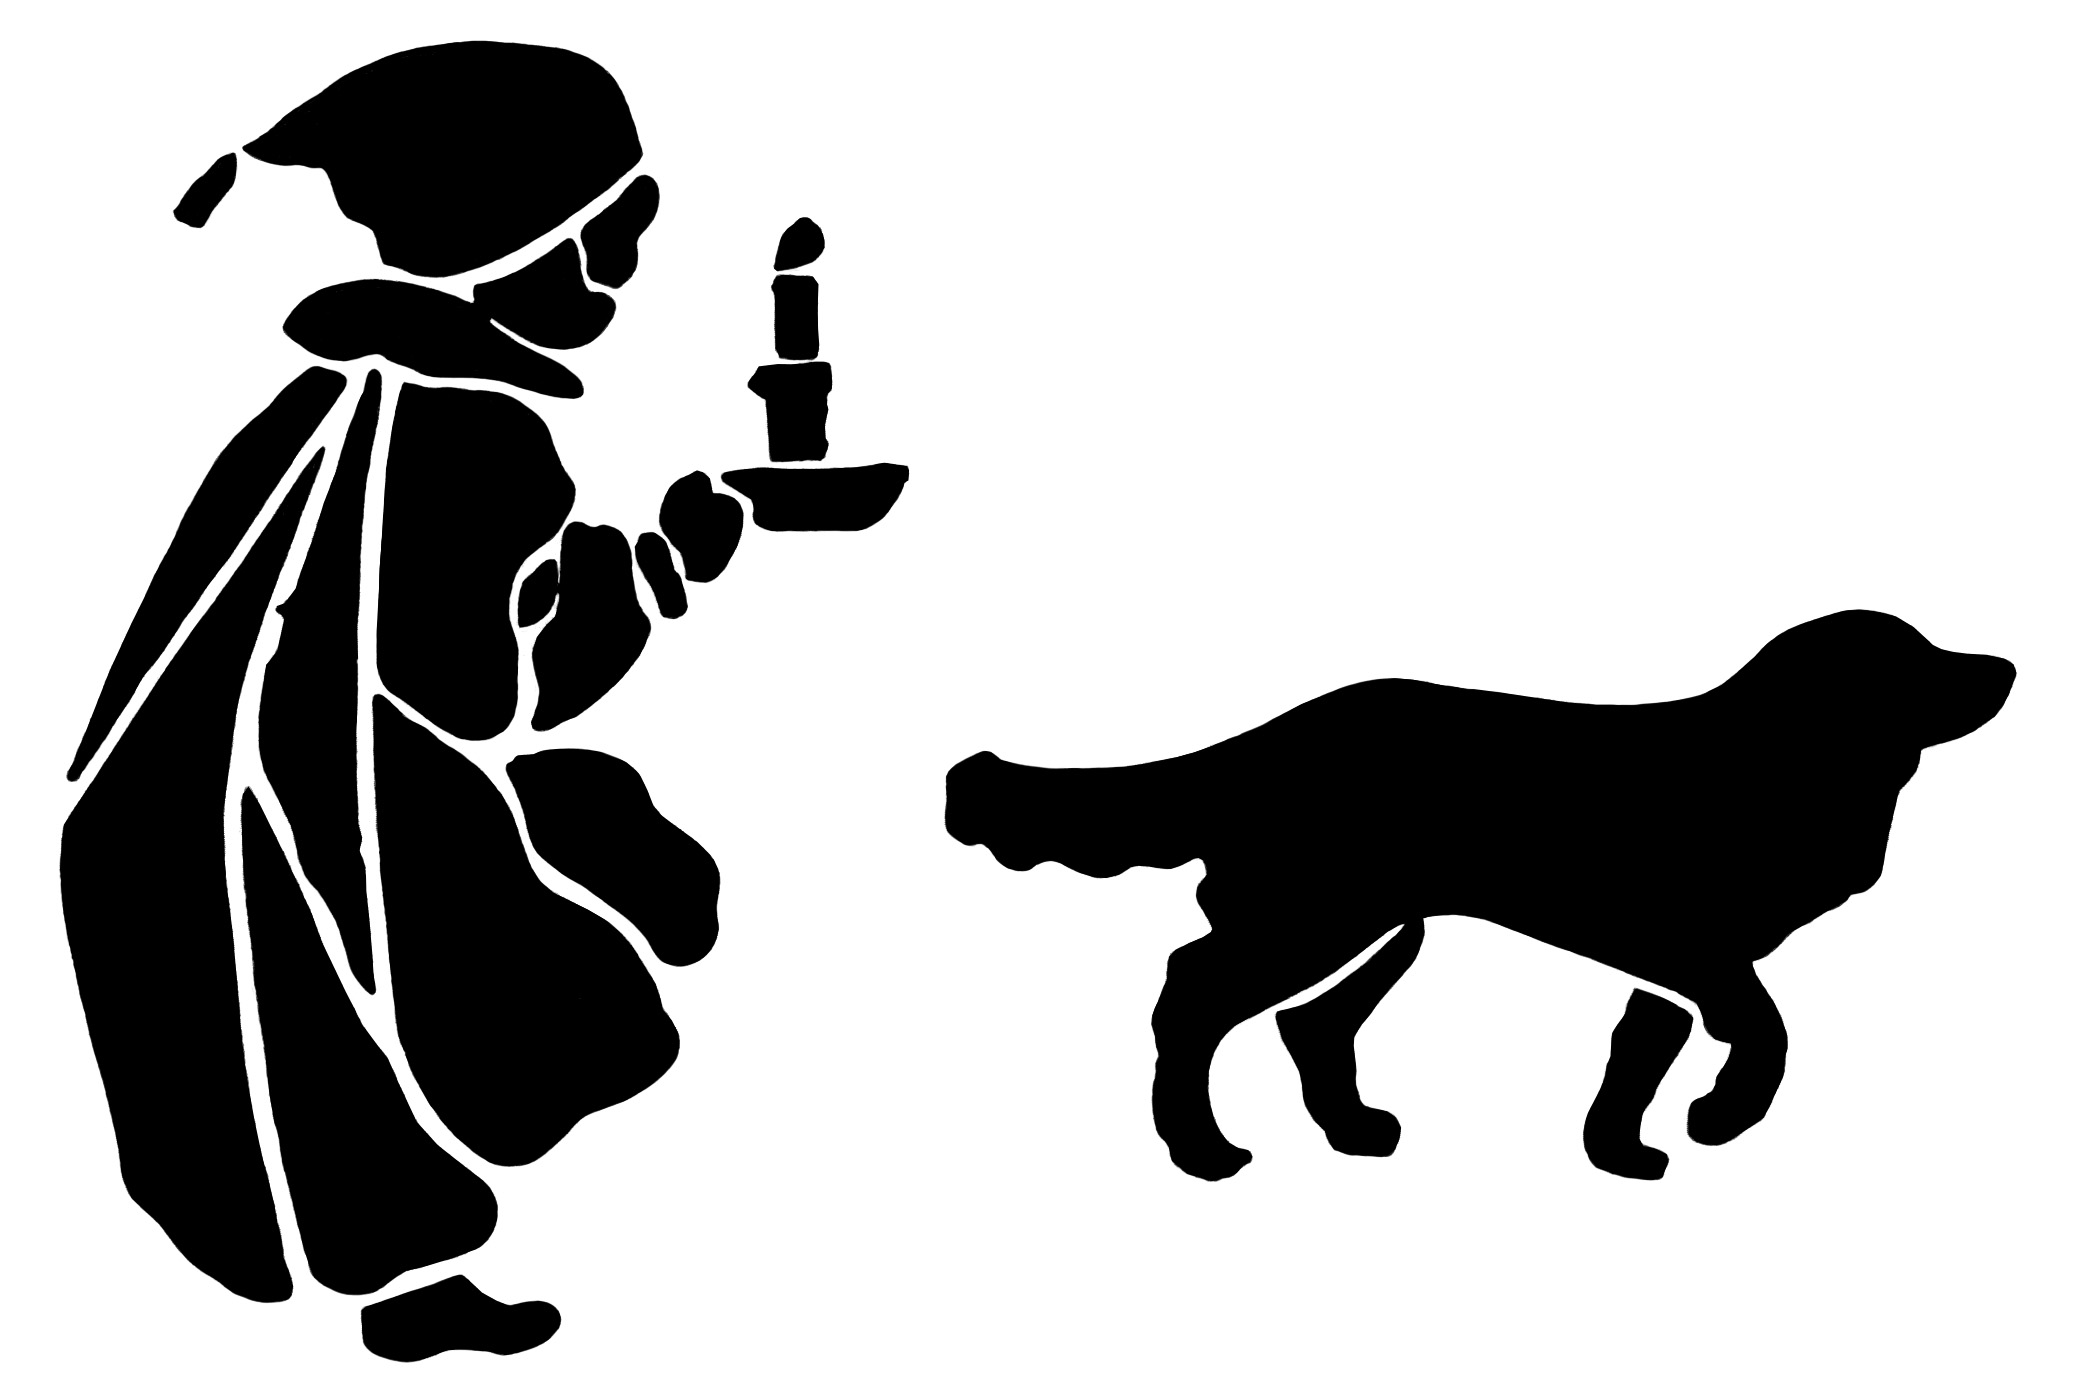 Victorian boy nightgown and cap, boy dog silhouette, black and white graphics, child and dog illustration, vintage boy clip art